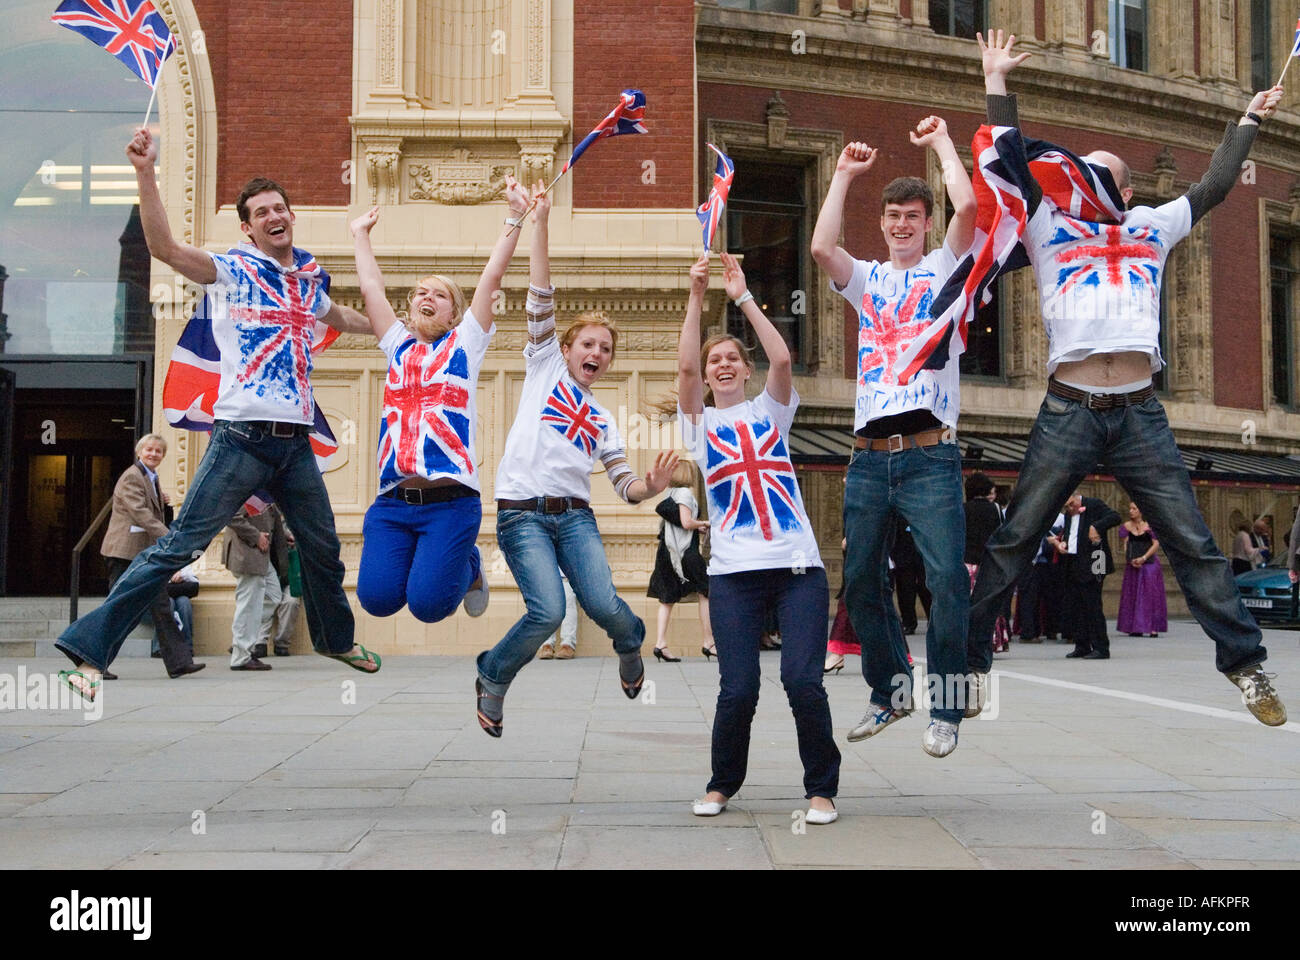 The Last Night of the Proms The Royal Albert Hall South Kensington London UK The Henry Wood Promenade Concerts HOMER - Stock Image